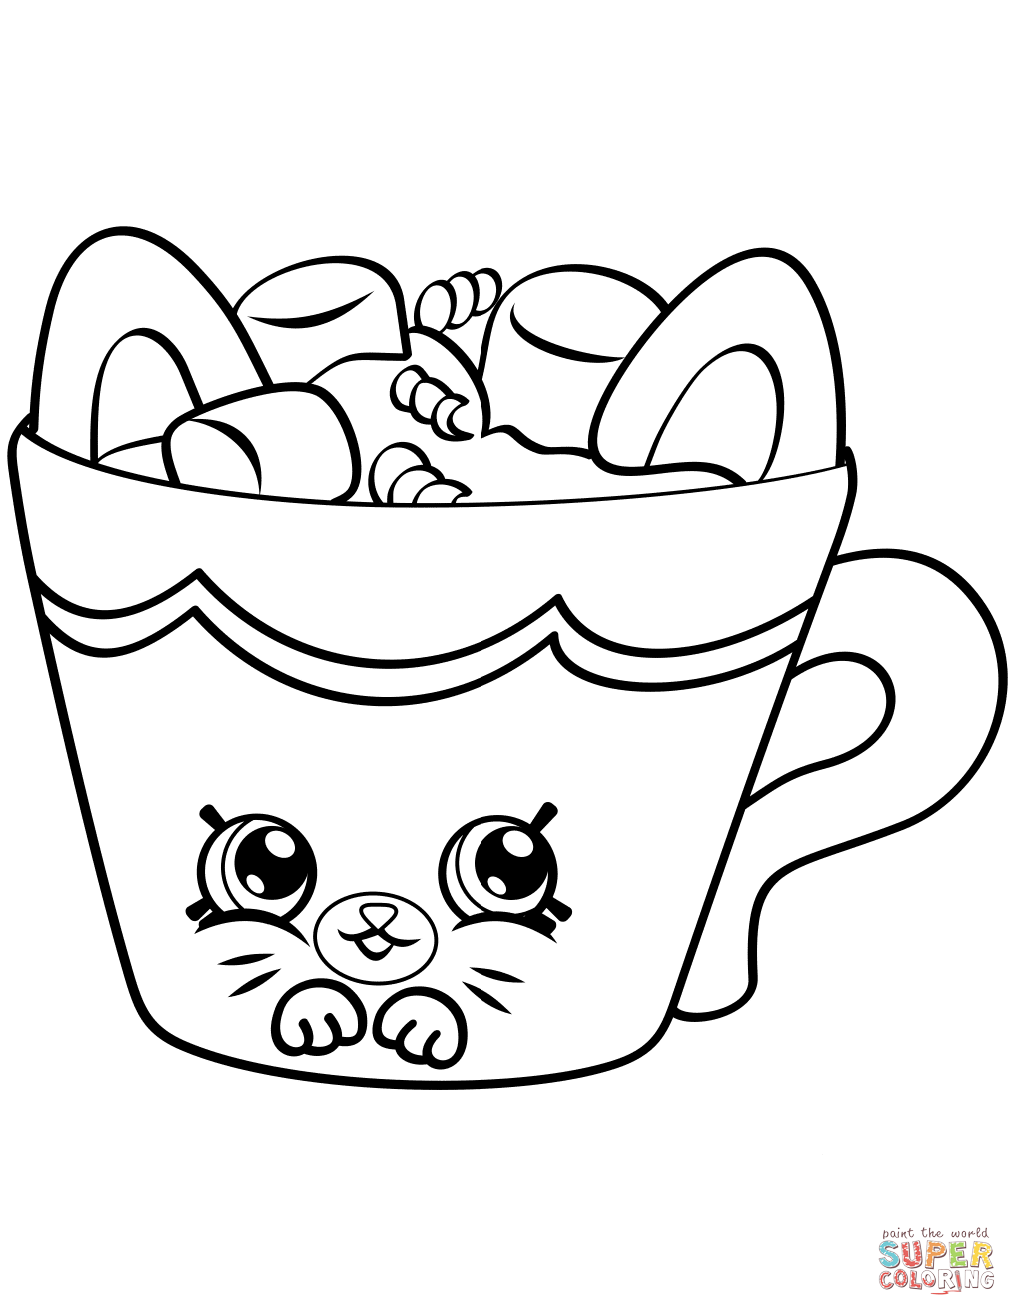 Eggchic Pe Ins Shopkin Coloring Page Free Printable Coloring Pages